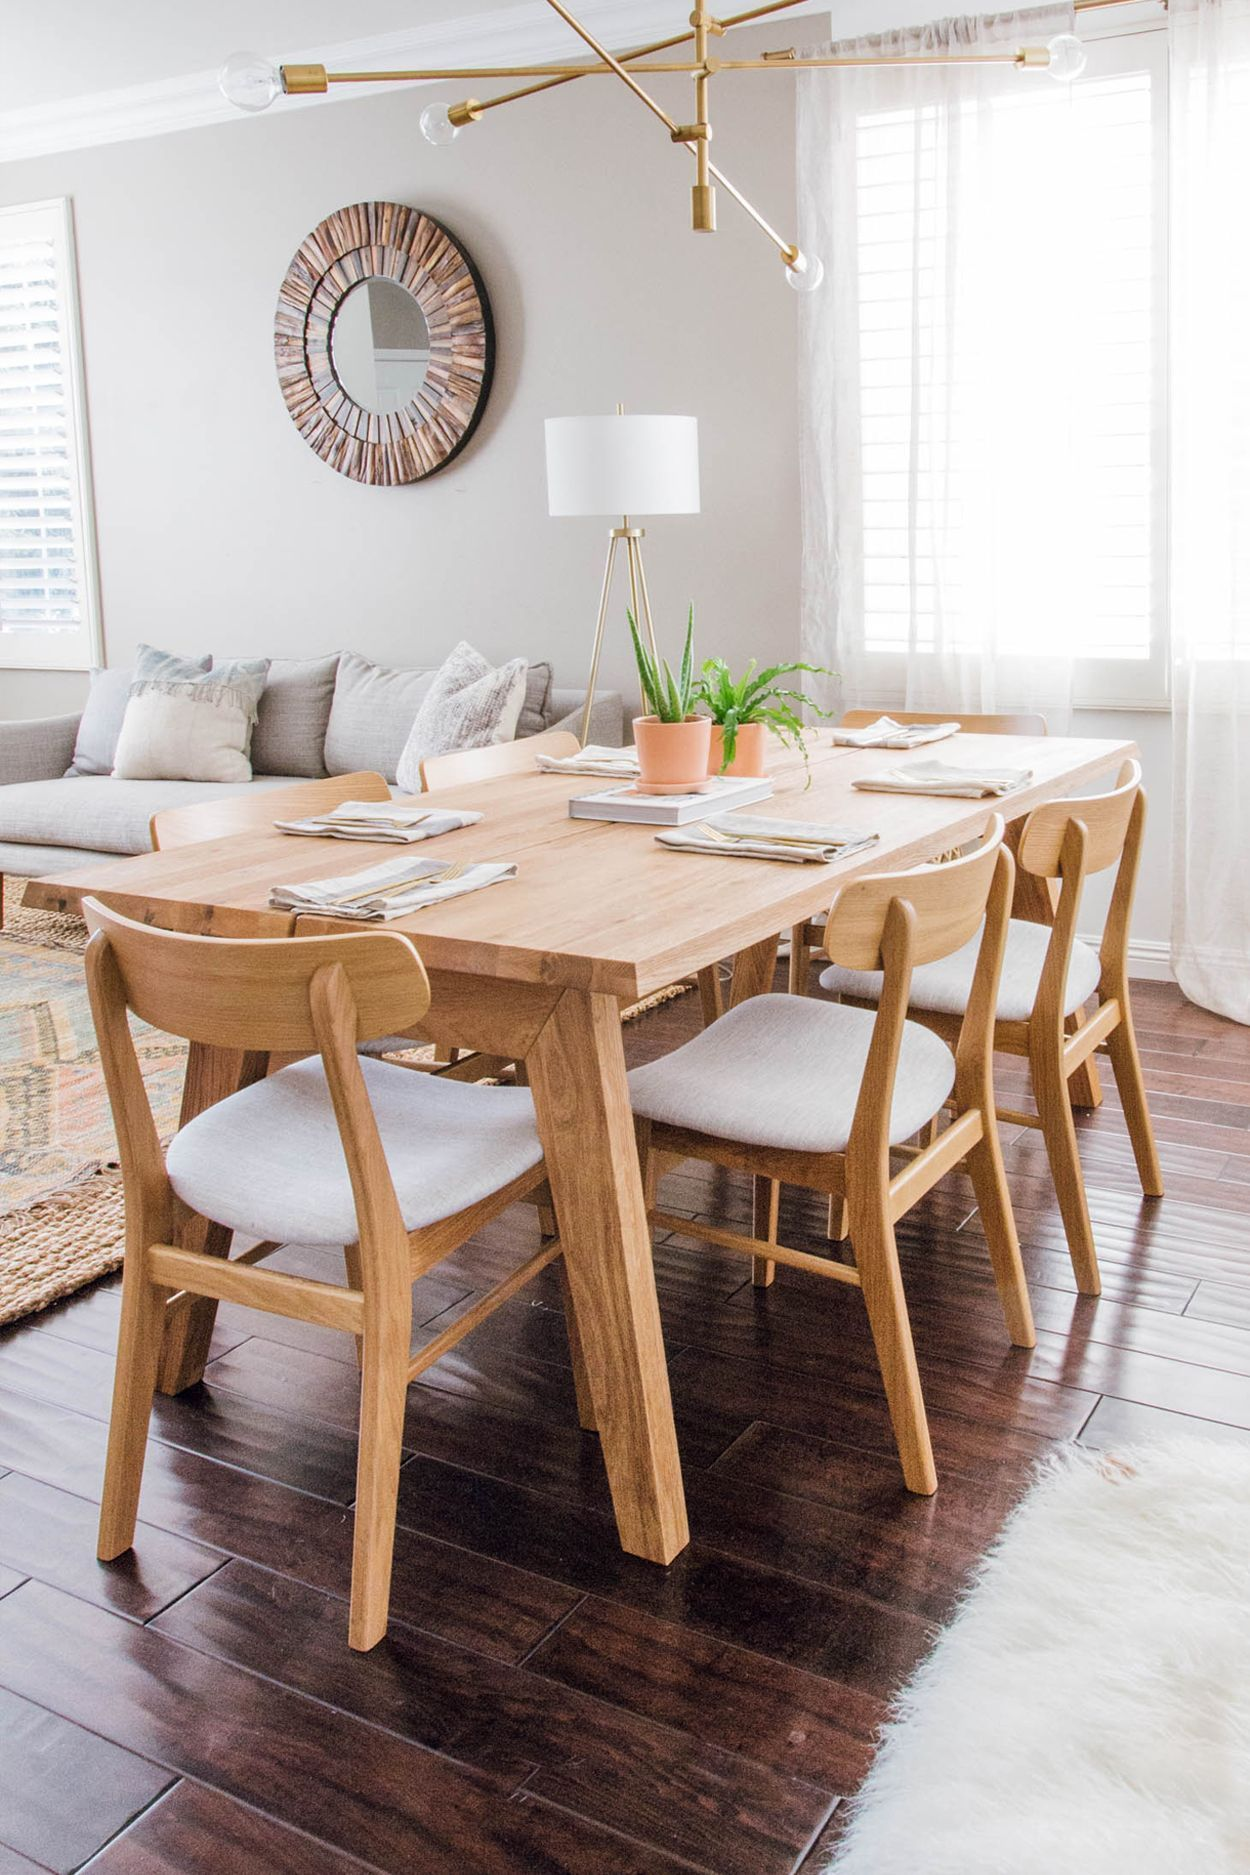 Madera Oak Dining Table For 6 Wood Dining Room Oak Dining Table Wood Dining Room Set